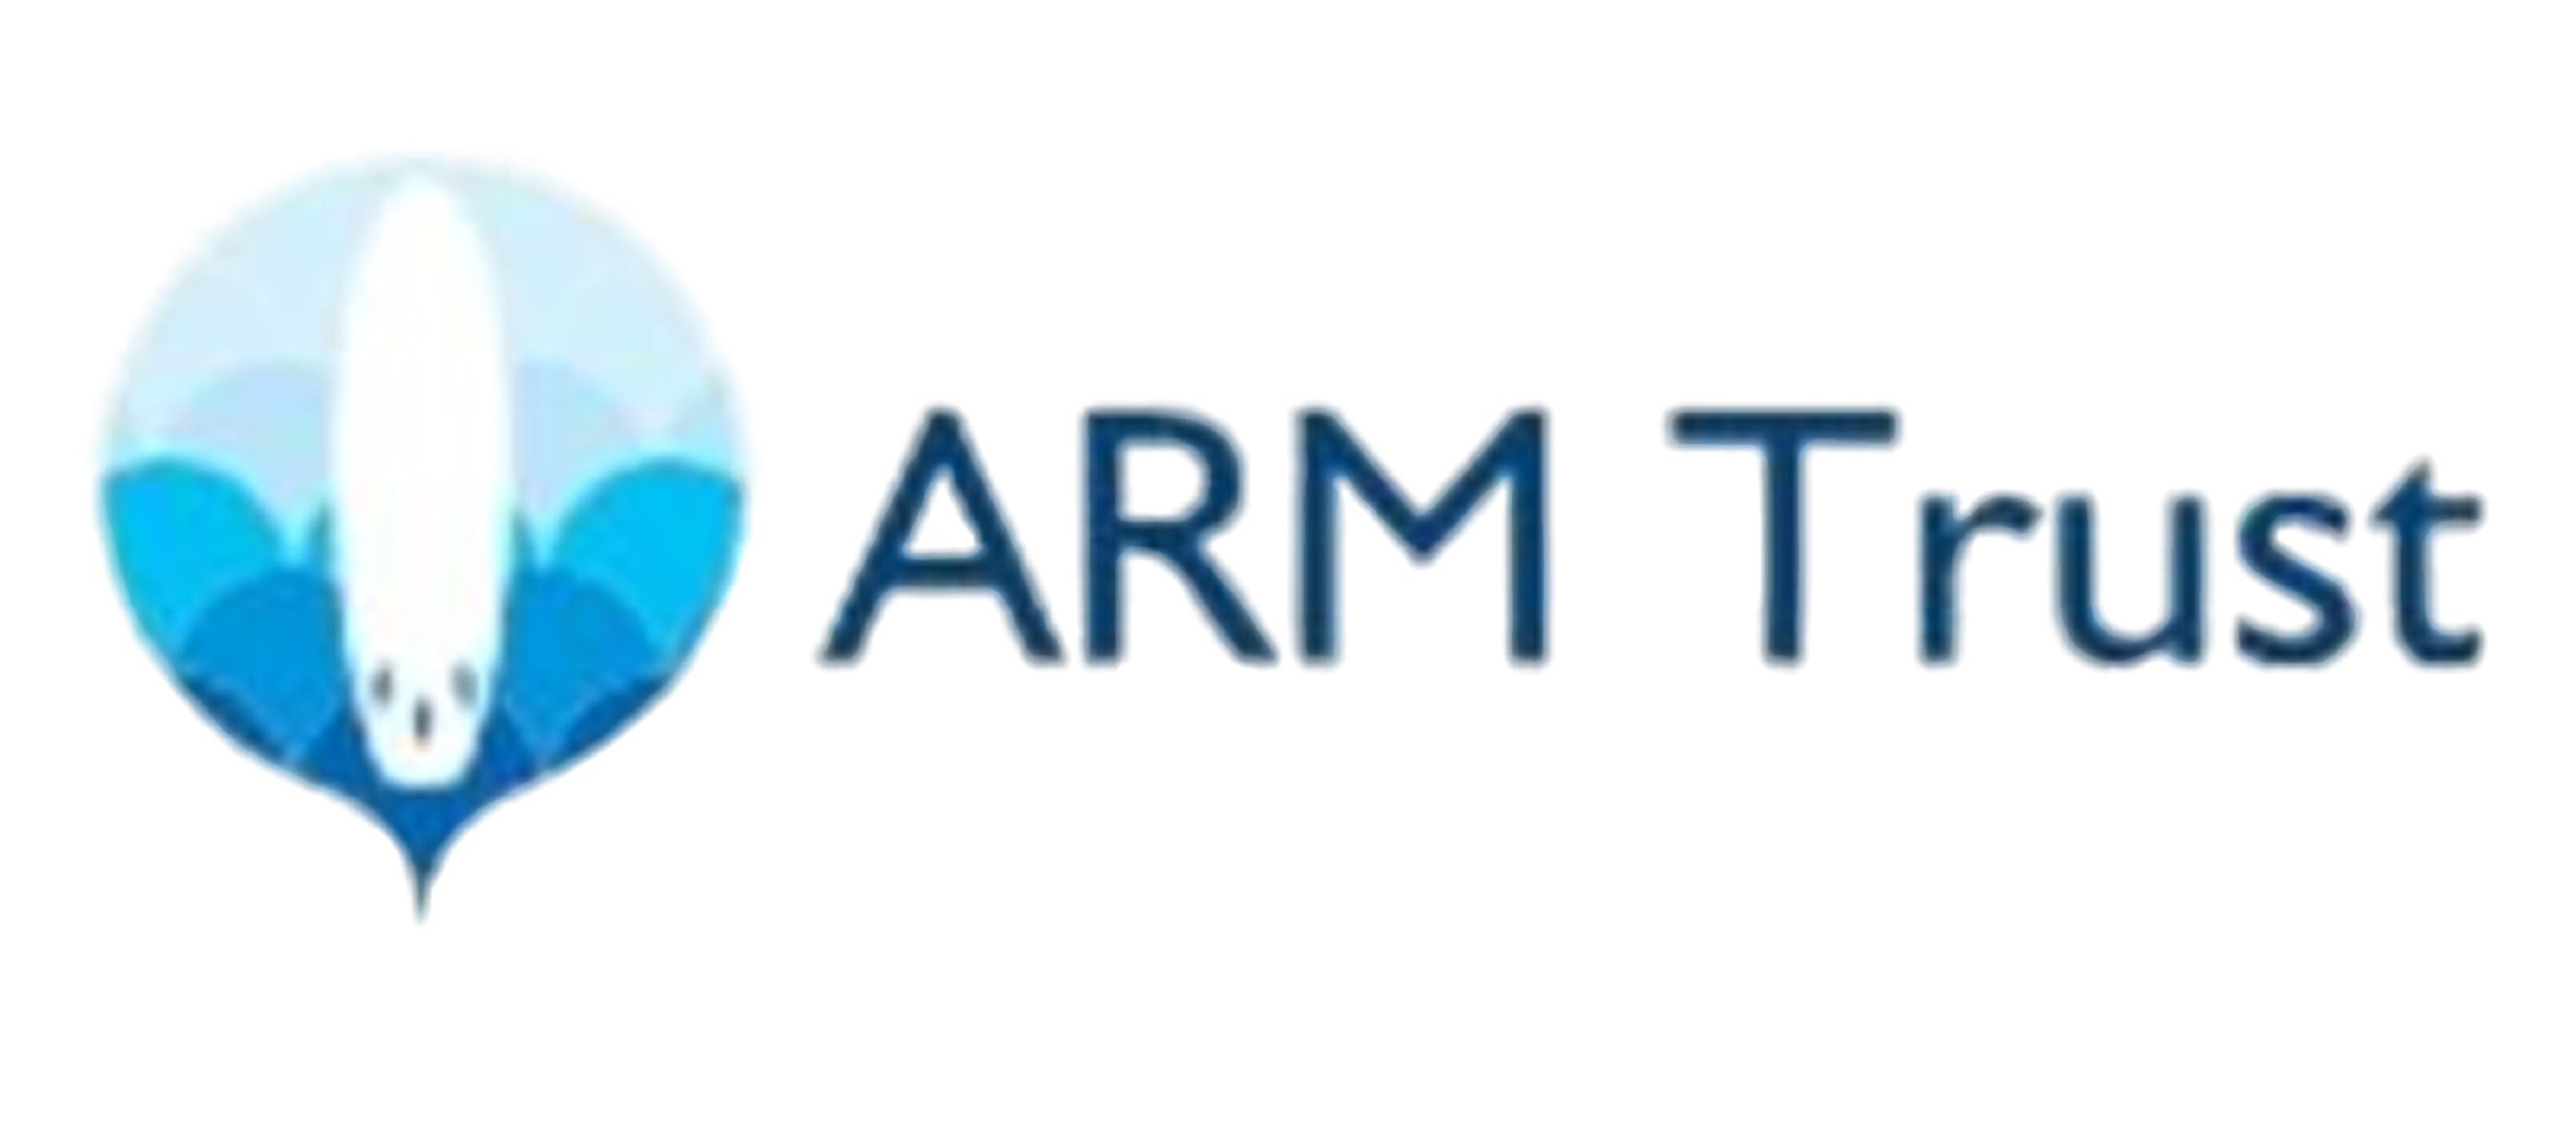 ARM Trust supporting St Chad's Sanctuary